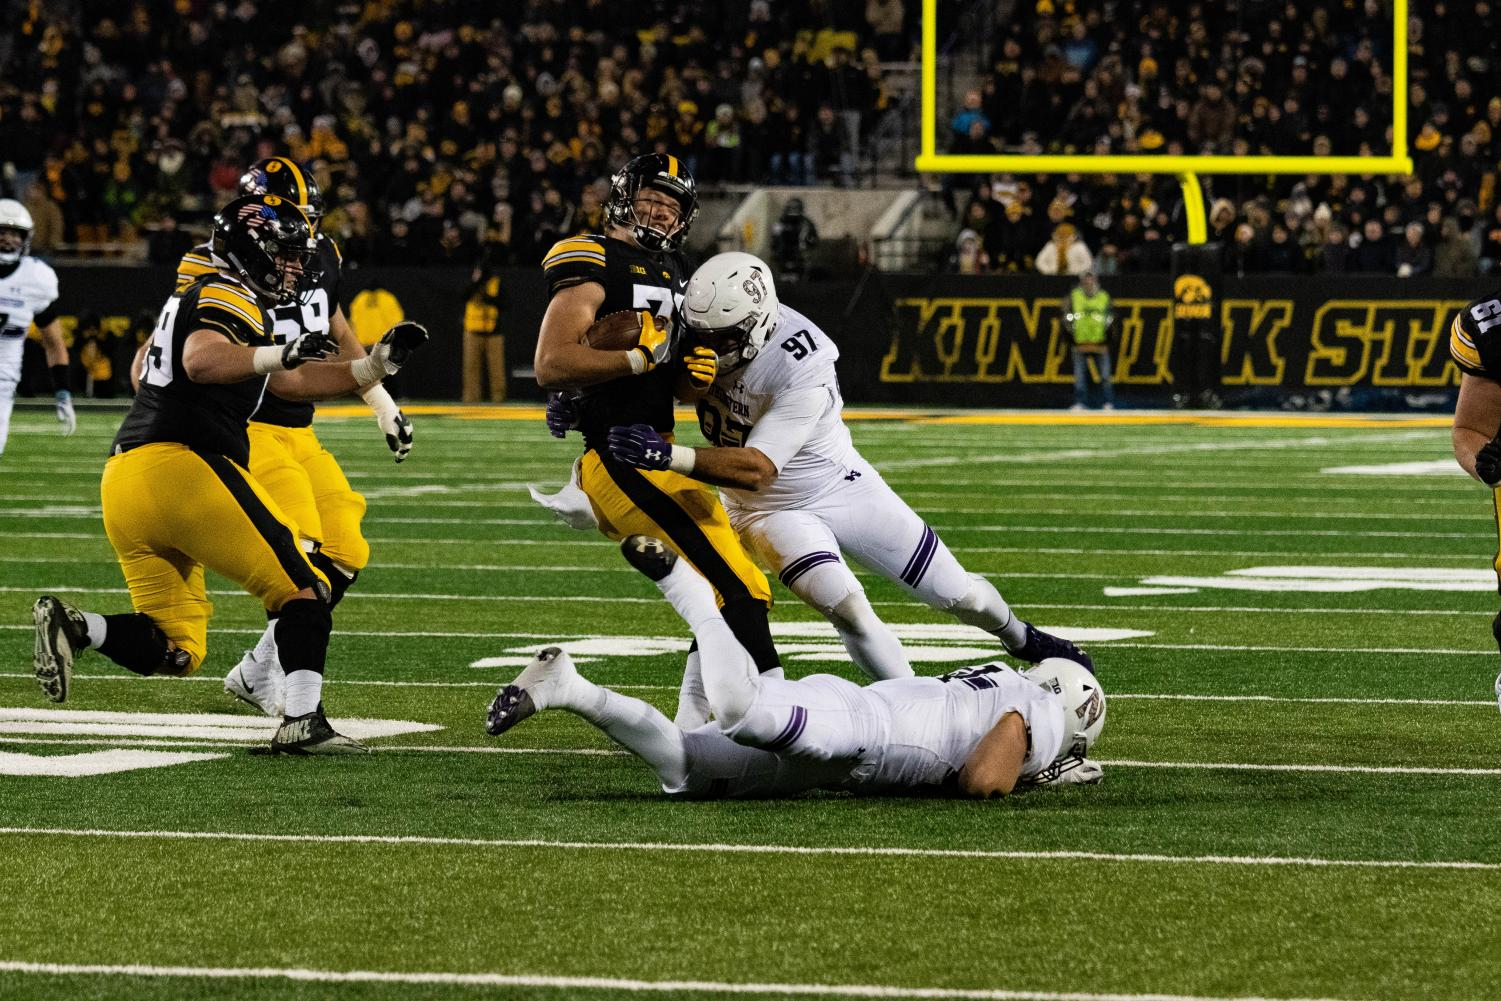 Joe Gaziano tackles an Iowa player. The junior defensive game was a key factor in Northwestern's win over No. 21 Iowa.